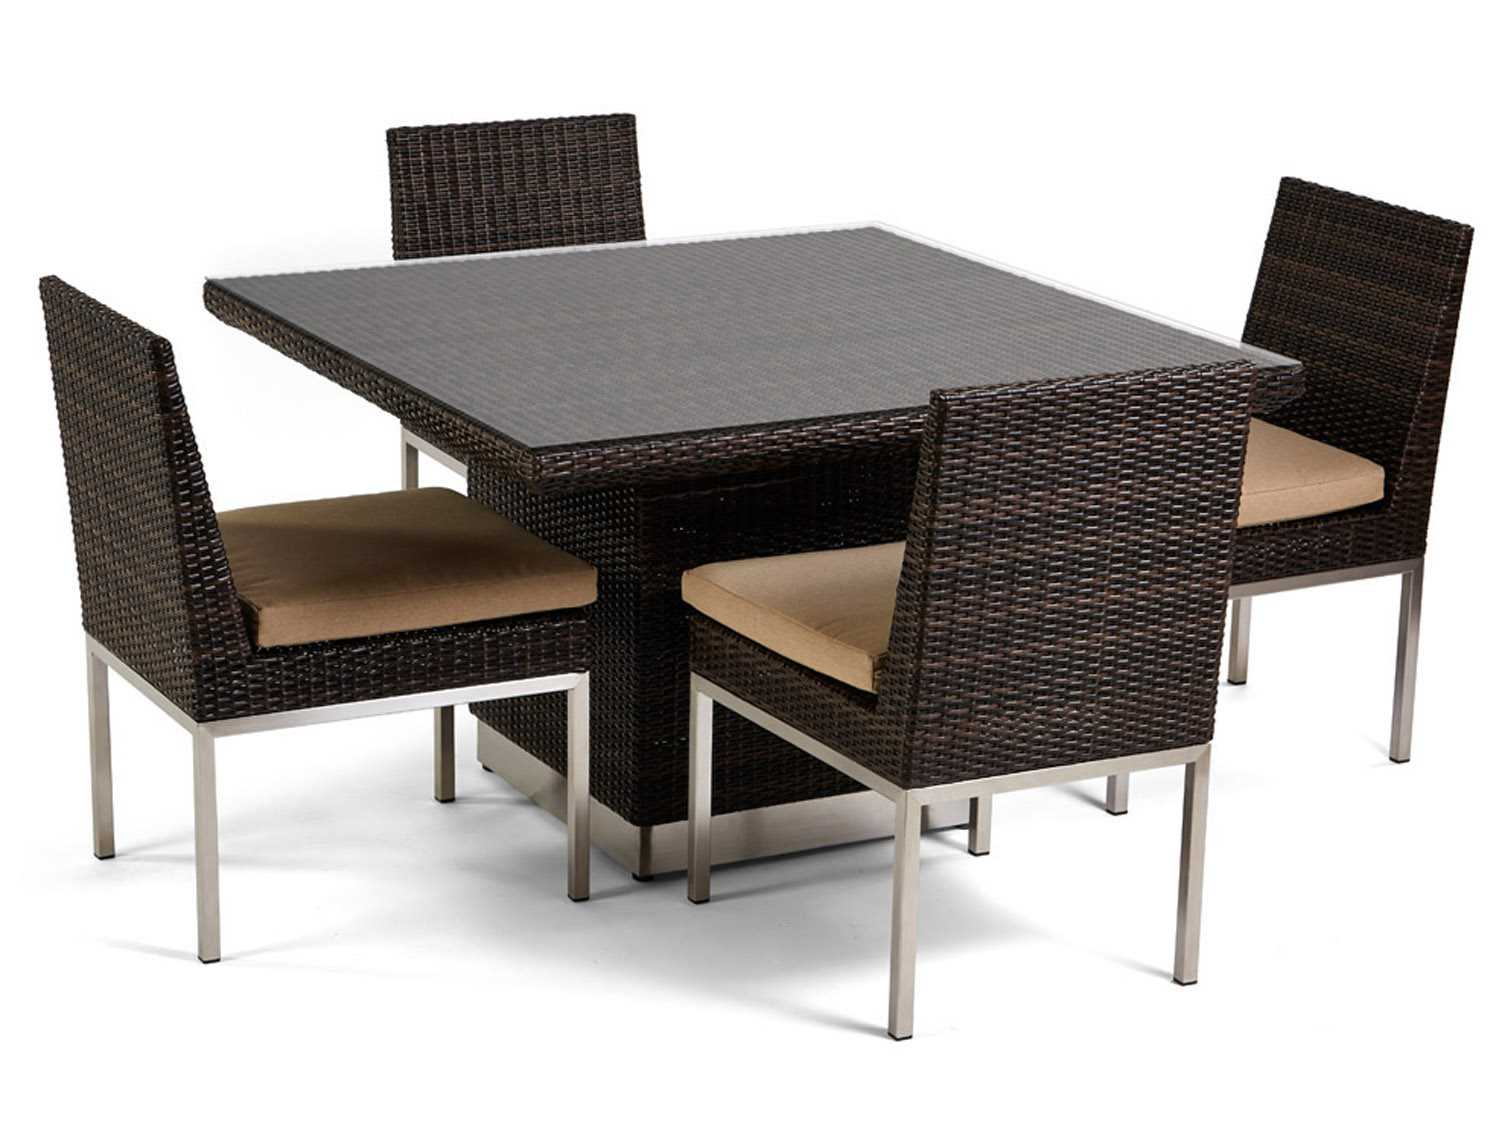 caluco mirabella wicker 48 39 39 wide square dining table with glass top 606 4848. Black Bedroom Furniture Sets. Home Design Ideas